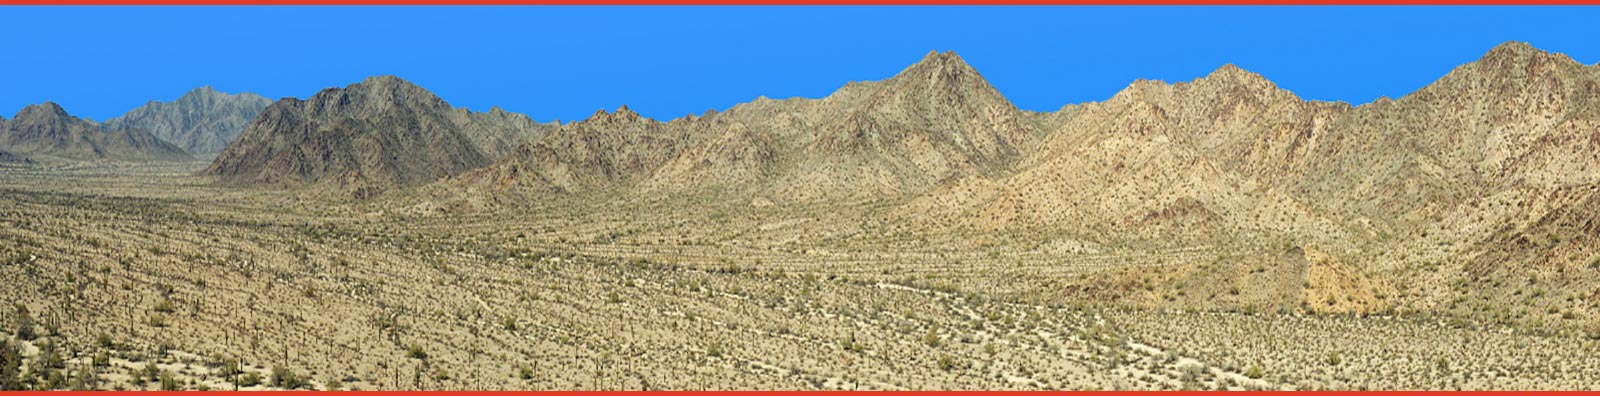 29 Palms Pistol And Rifle Club Home Page